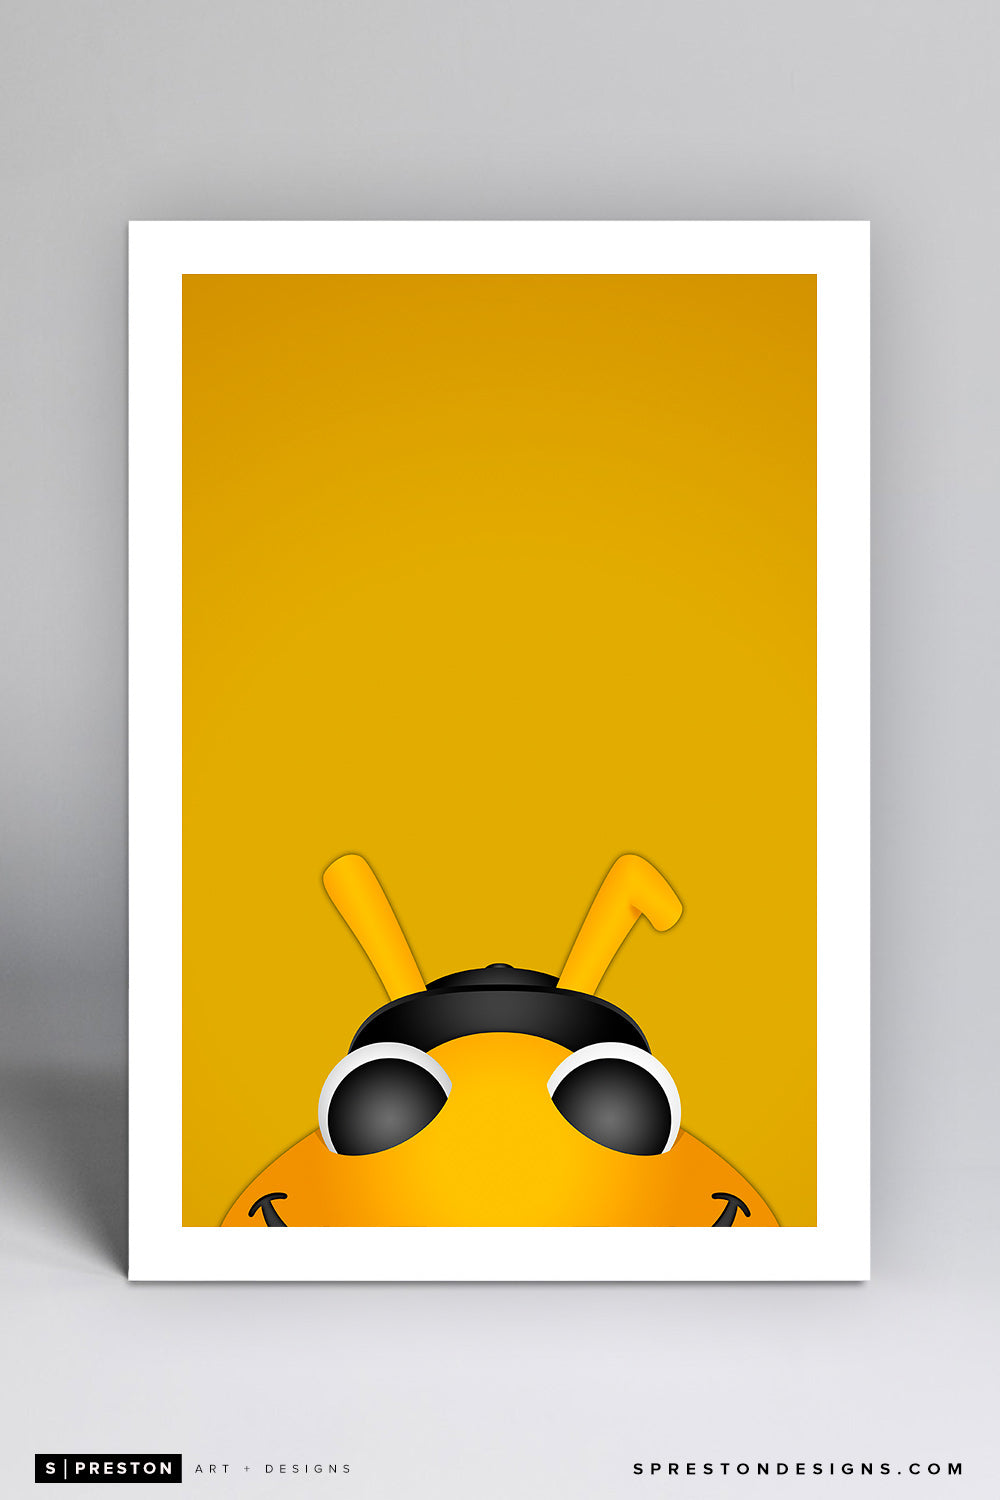 Minimalist Bumble - Salt Lake Bees - Salt Lake Bees - S. Preston